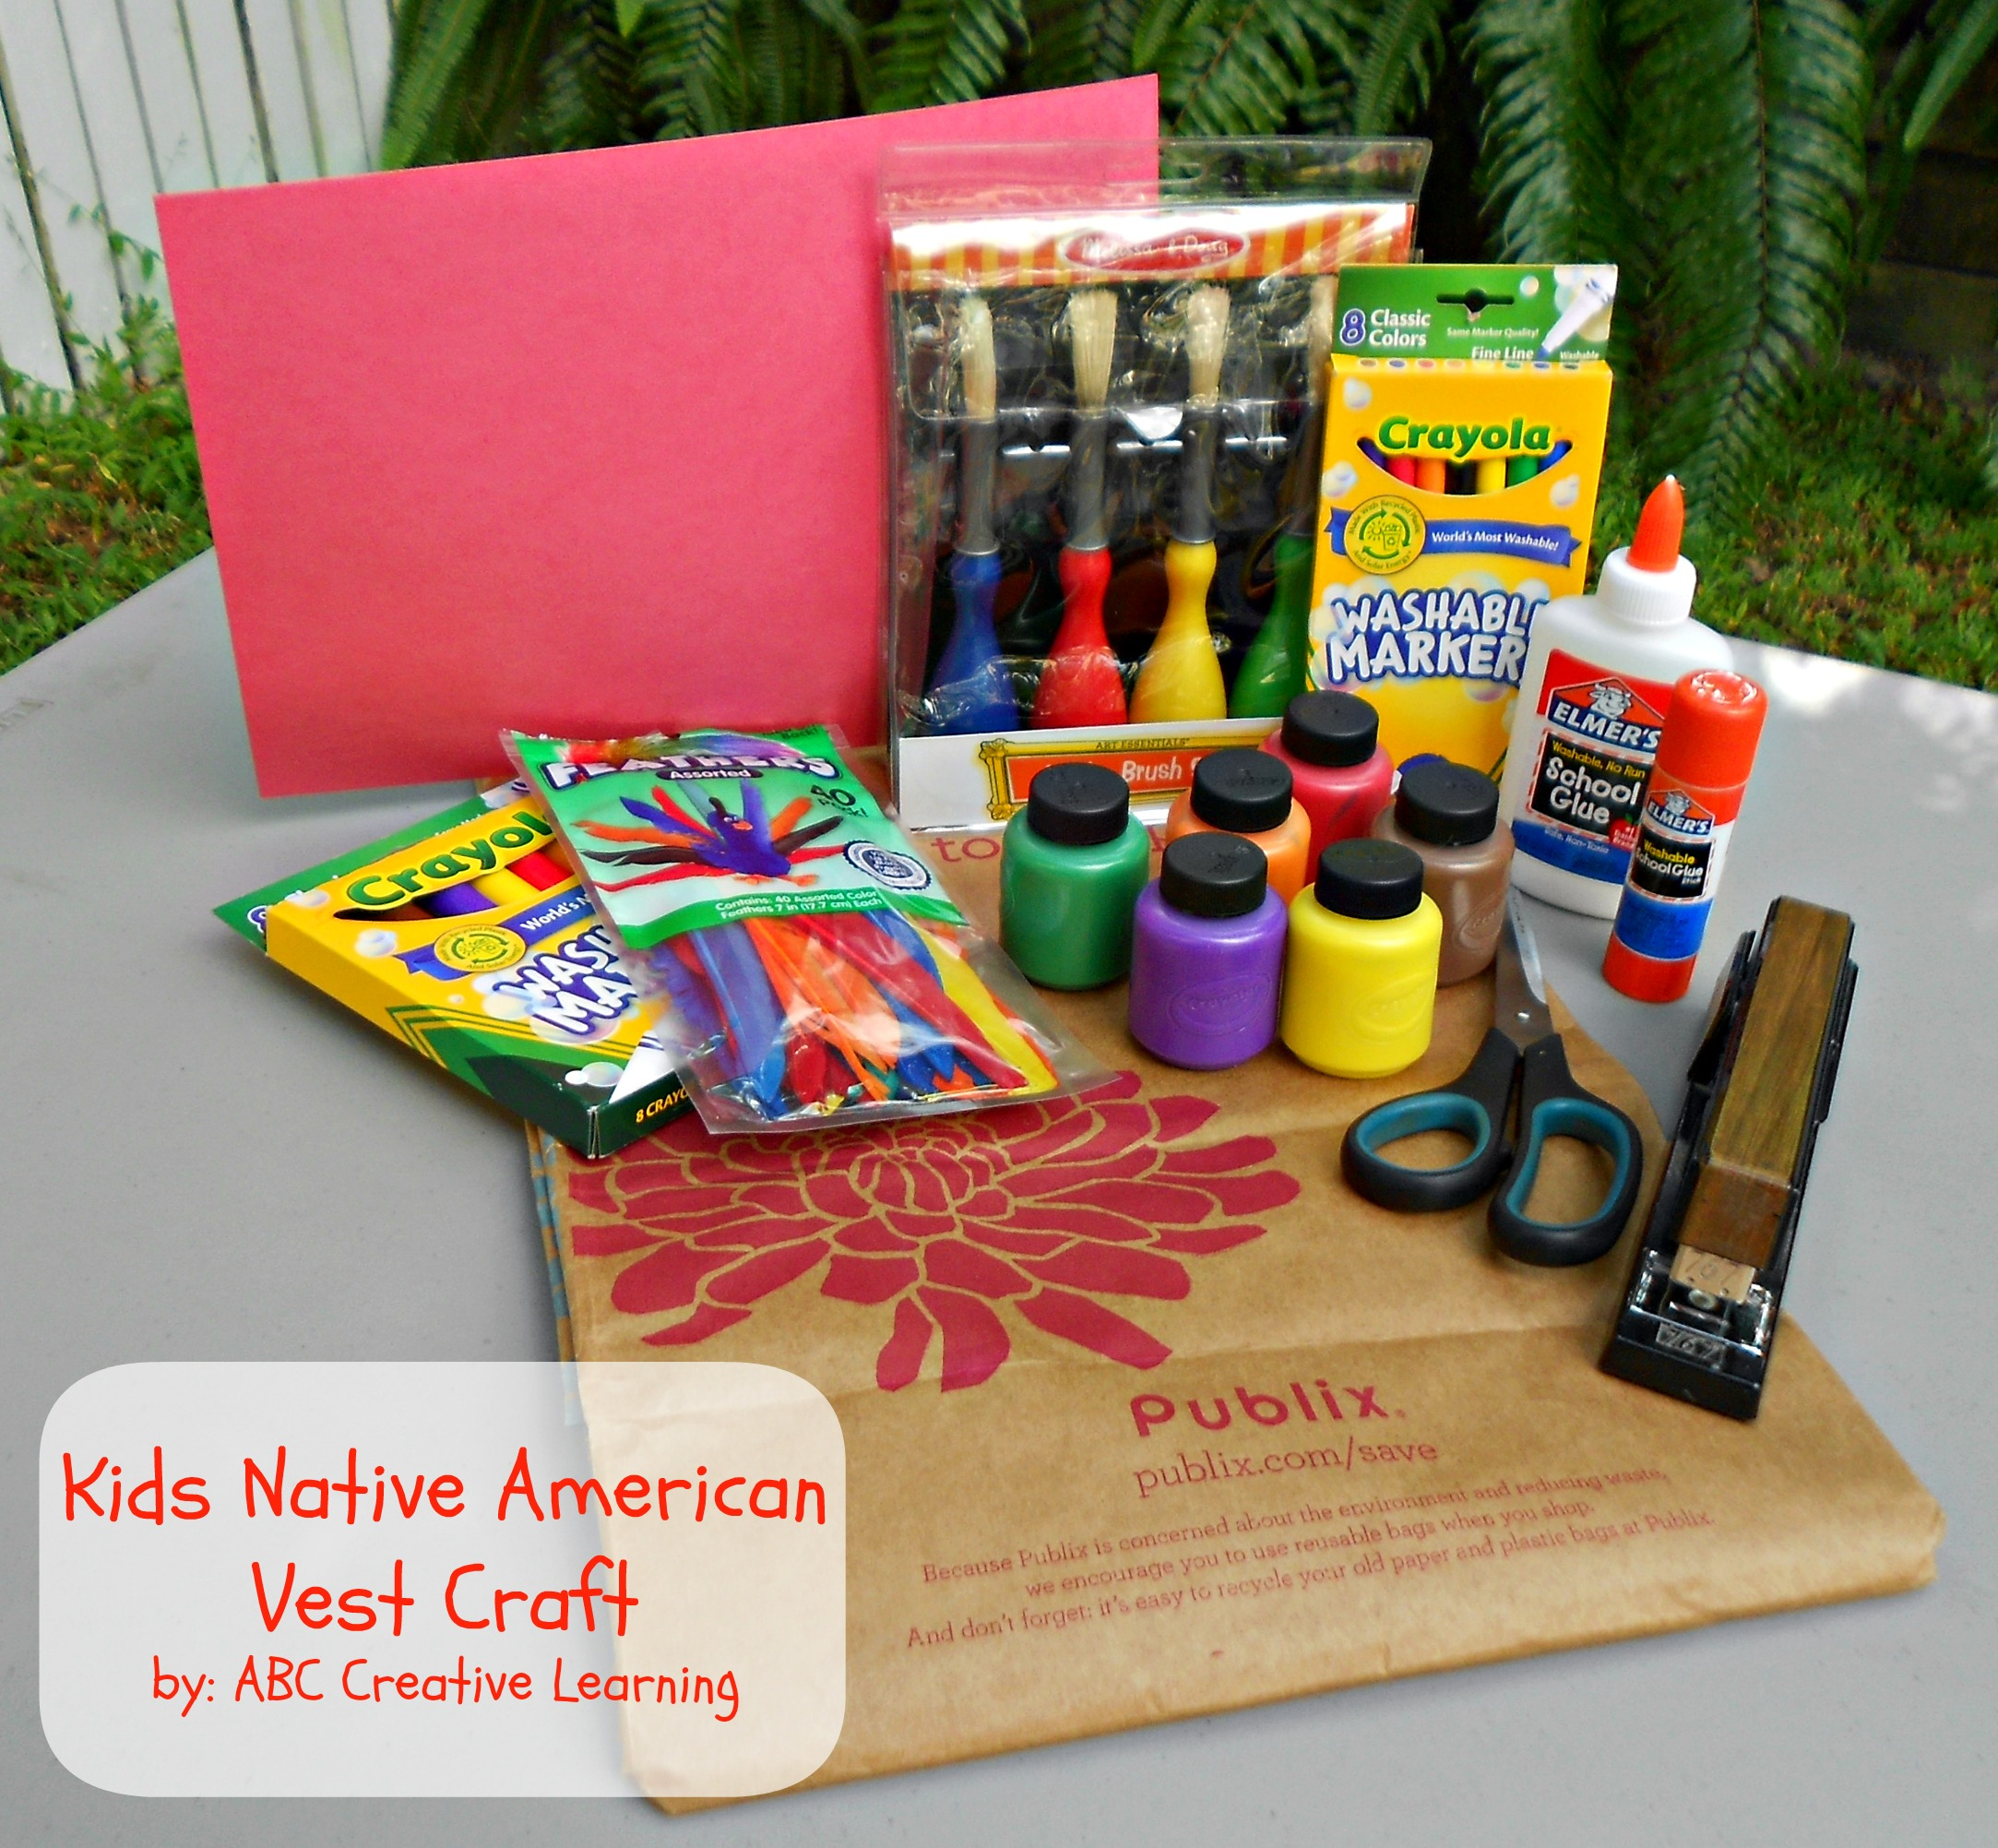 Kids Native American Vest Craft Materials